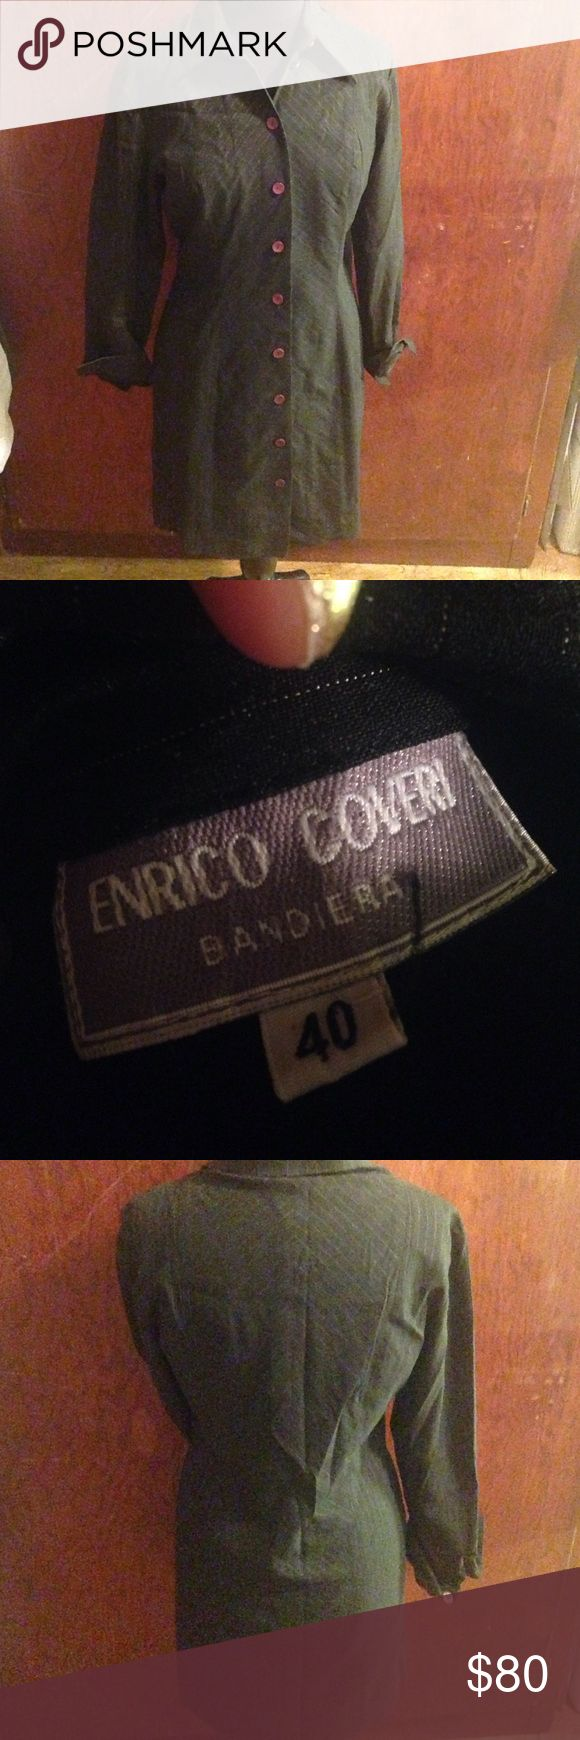 Enrico Coveri Bandiera Dress Jacket Blazer This is a vintage piece from Italian designer enrico coveri. Size 40 on the tag which is around a size 10 US Ladies size. This is a jacket Blazer that is dress length. You may wear it over a dress but also could wear it as a dress. It reminds me of what Wednesday Addams would wear in a grown up job. The buttons are brown and the jacket is pinstriped. Enrico Coveri Jackets & Coats Trench Coats